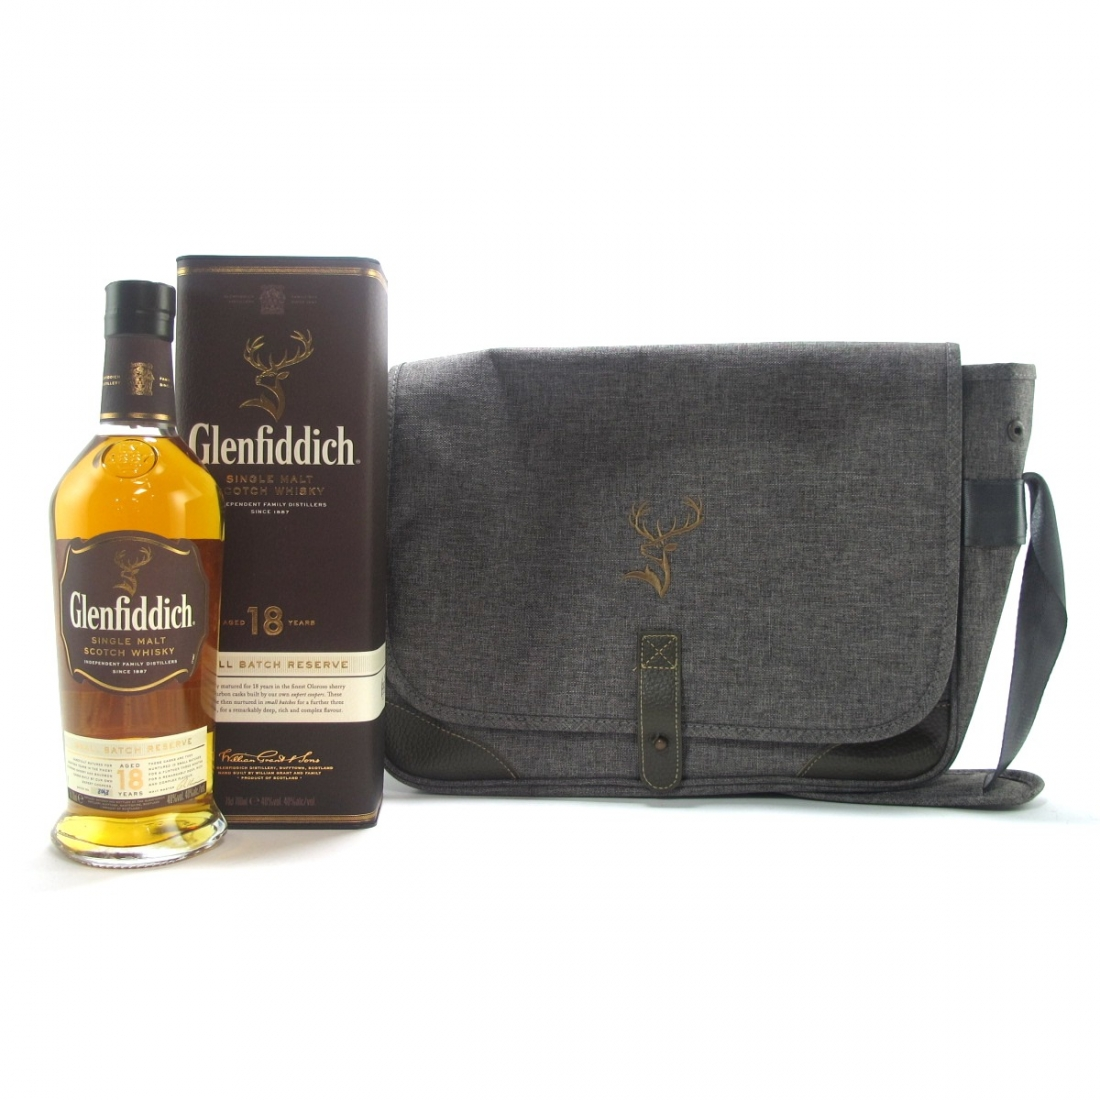 Glenfiddich 18 Year Old Small Batch Reserve / with Messenger Bag